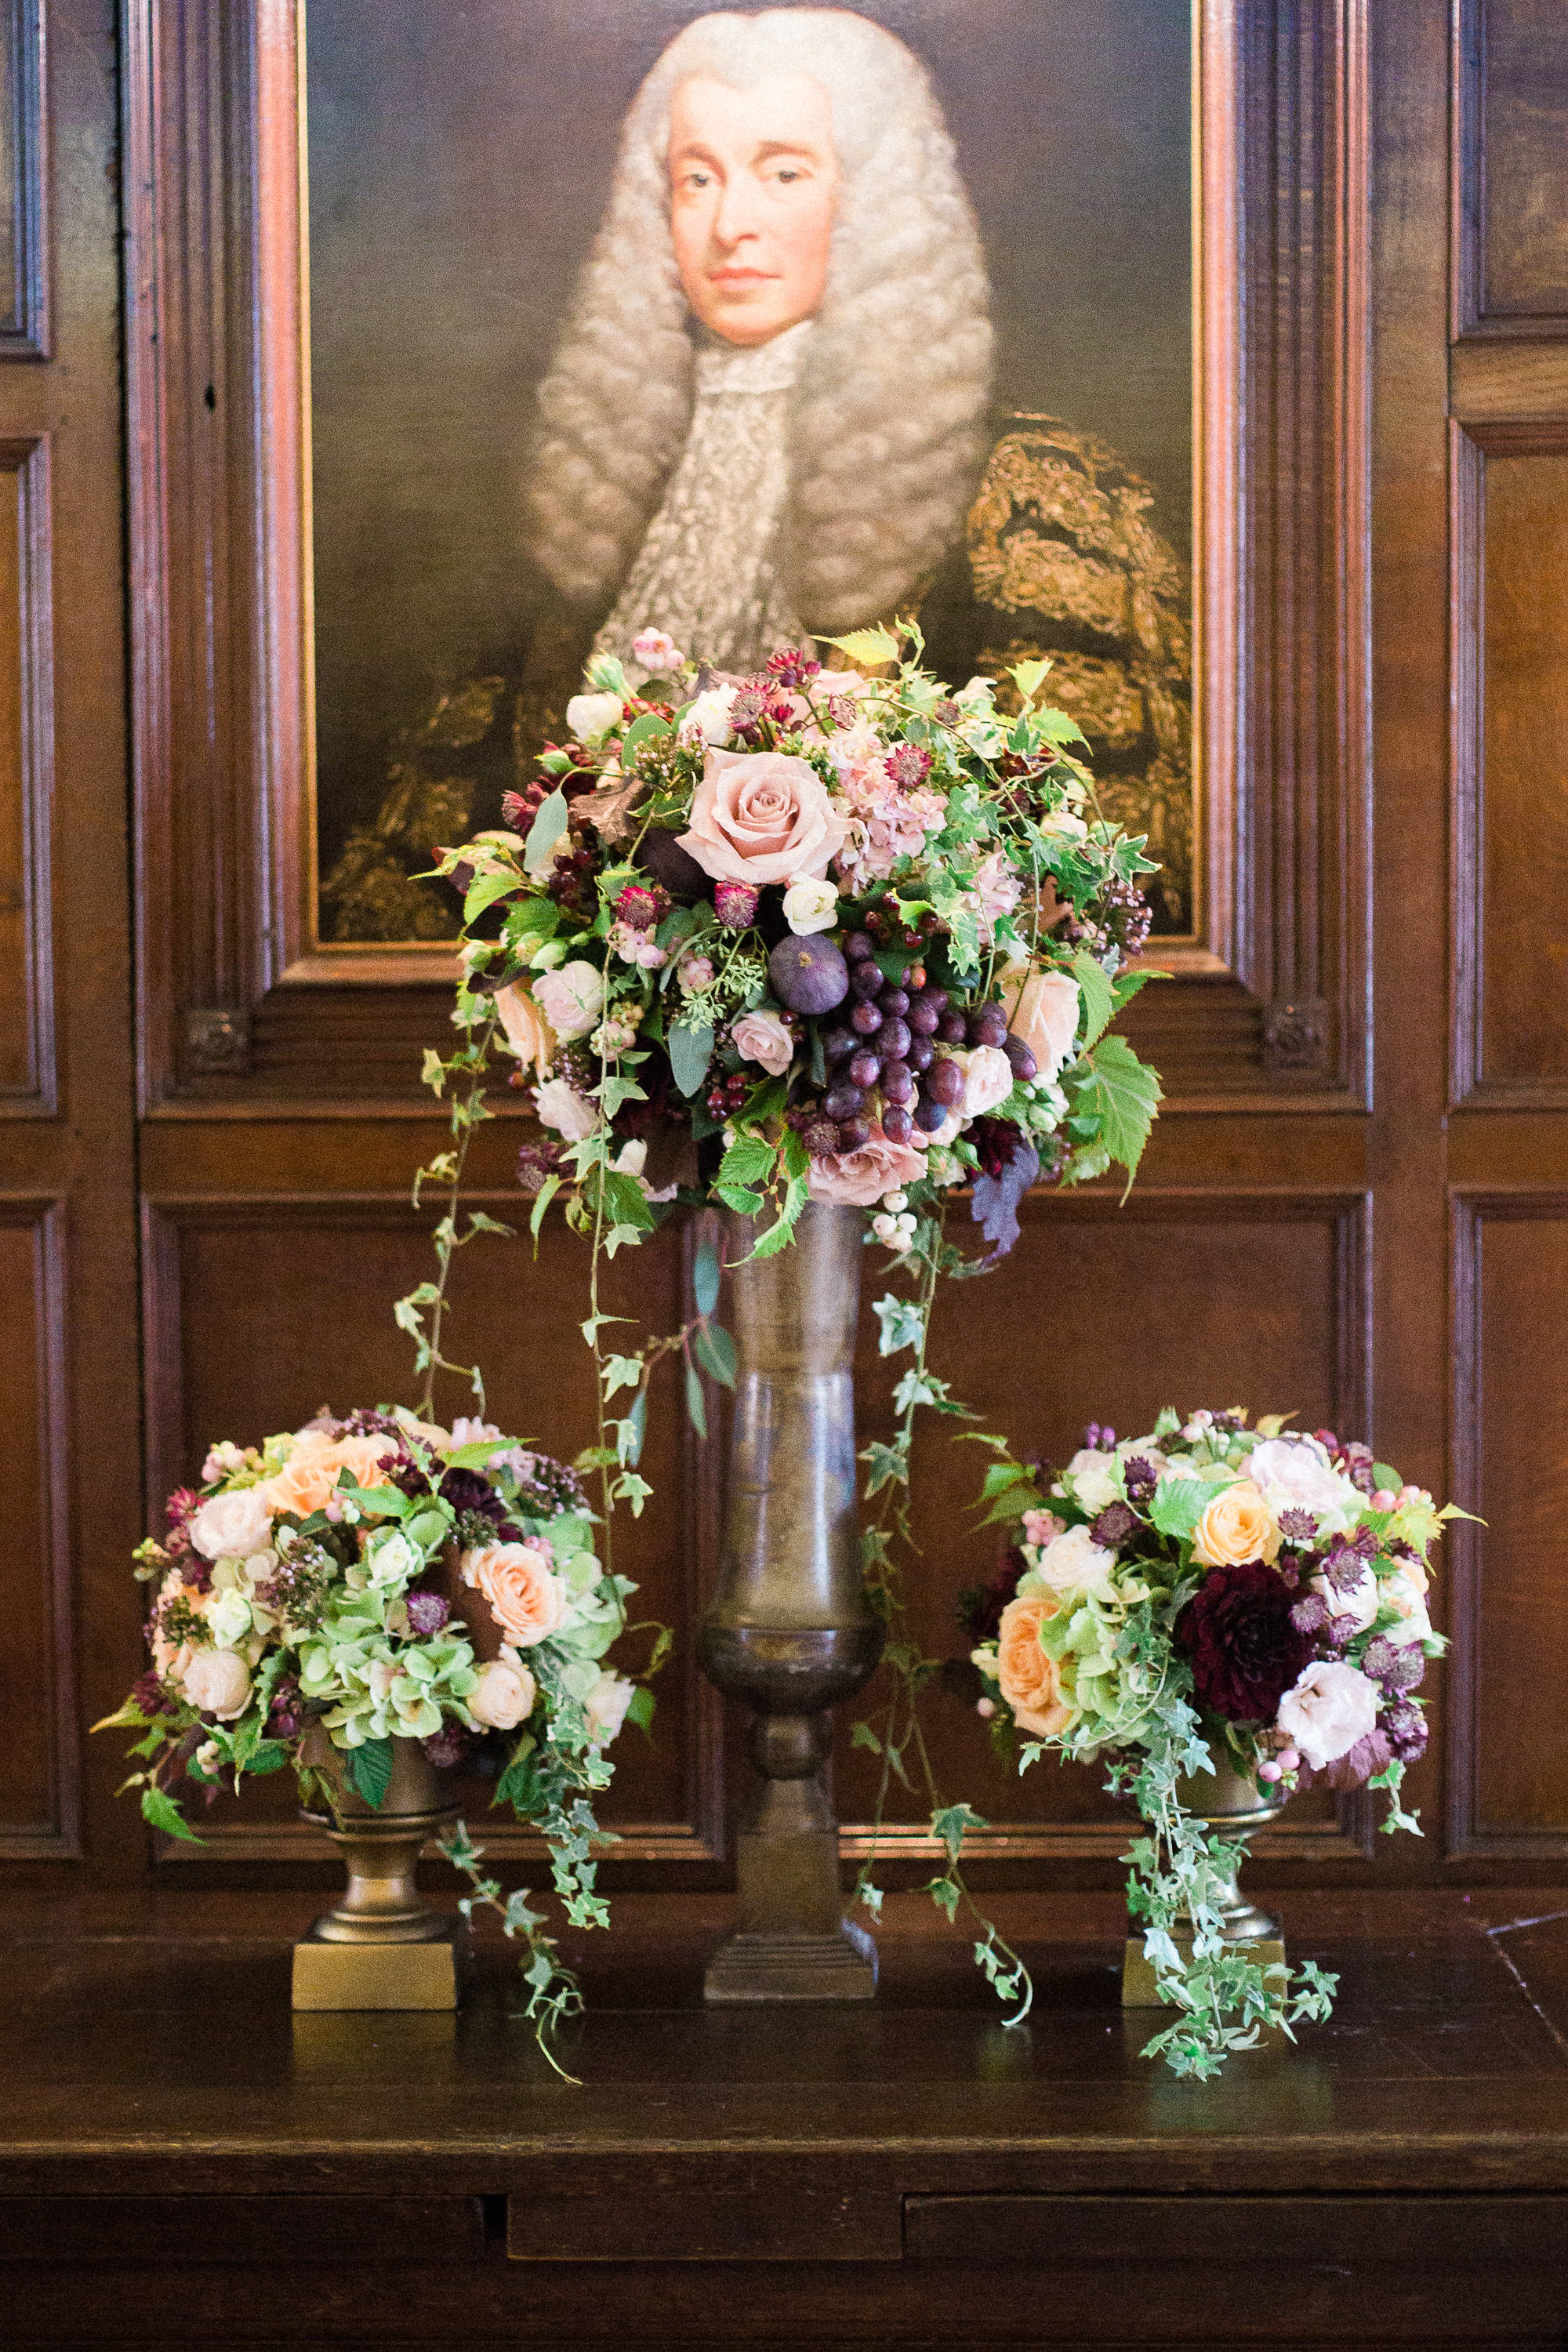 floral art formal venue wedding